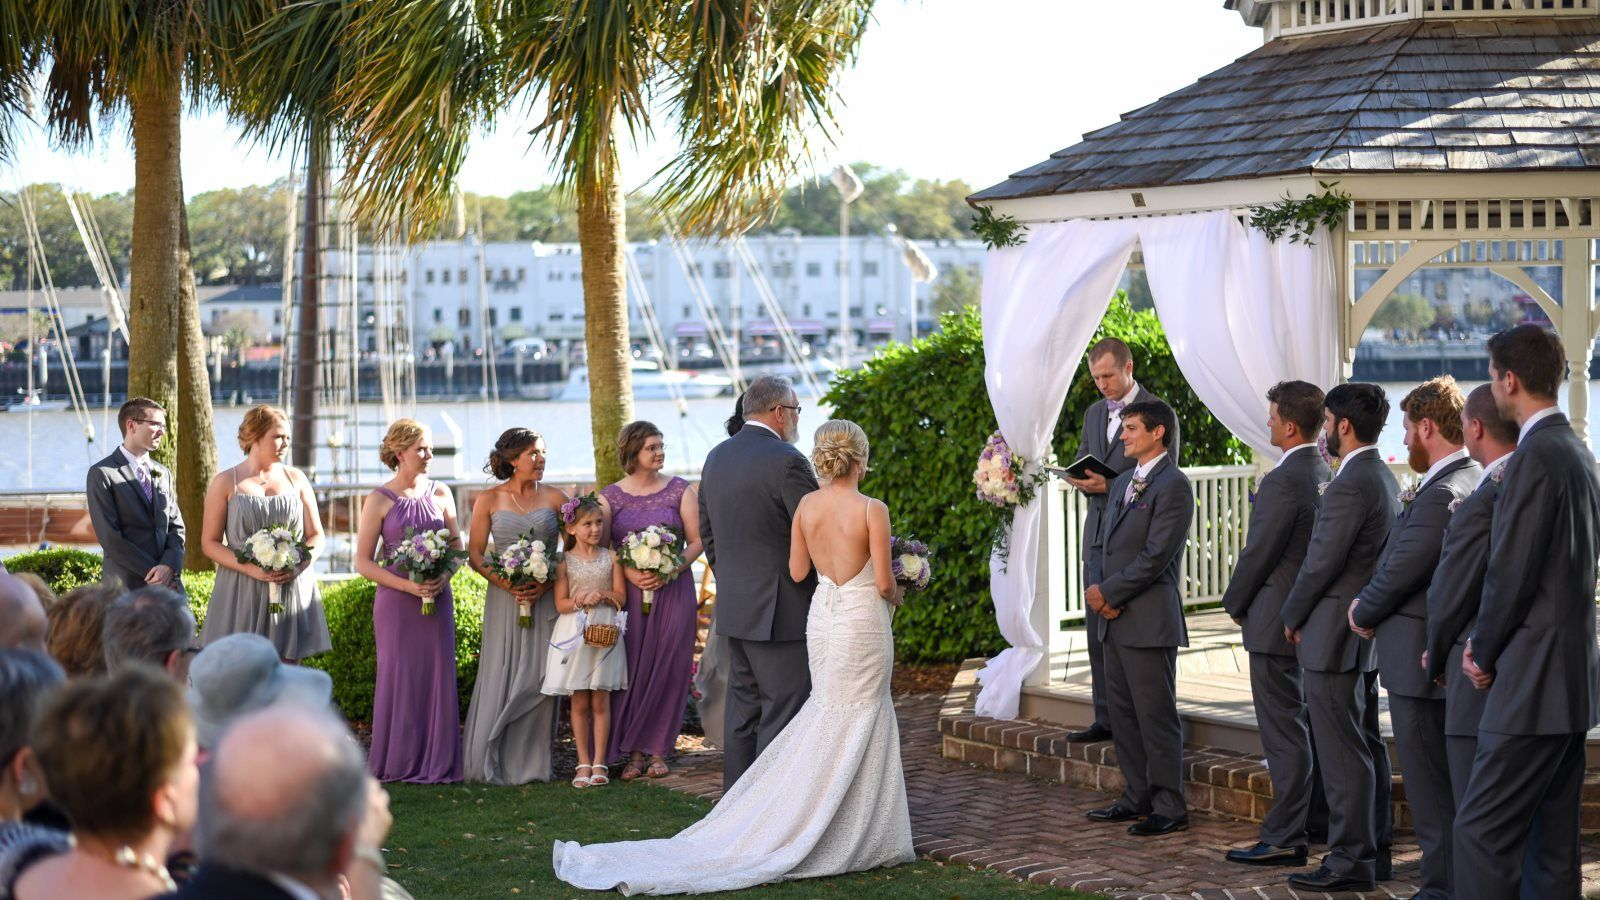 Outdoor Wedding Ceremony | The Westin Savannah Harbor Golf Resort & Spa